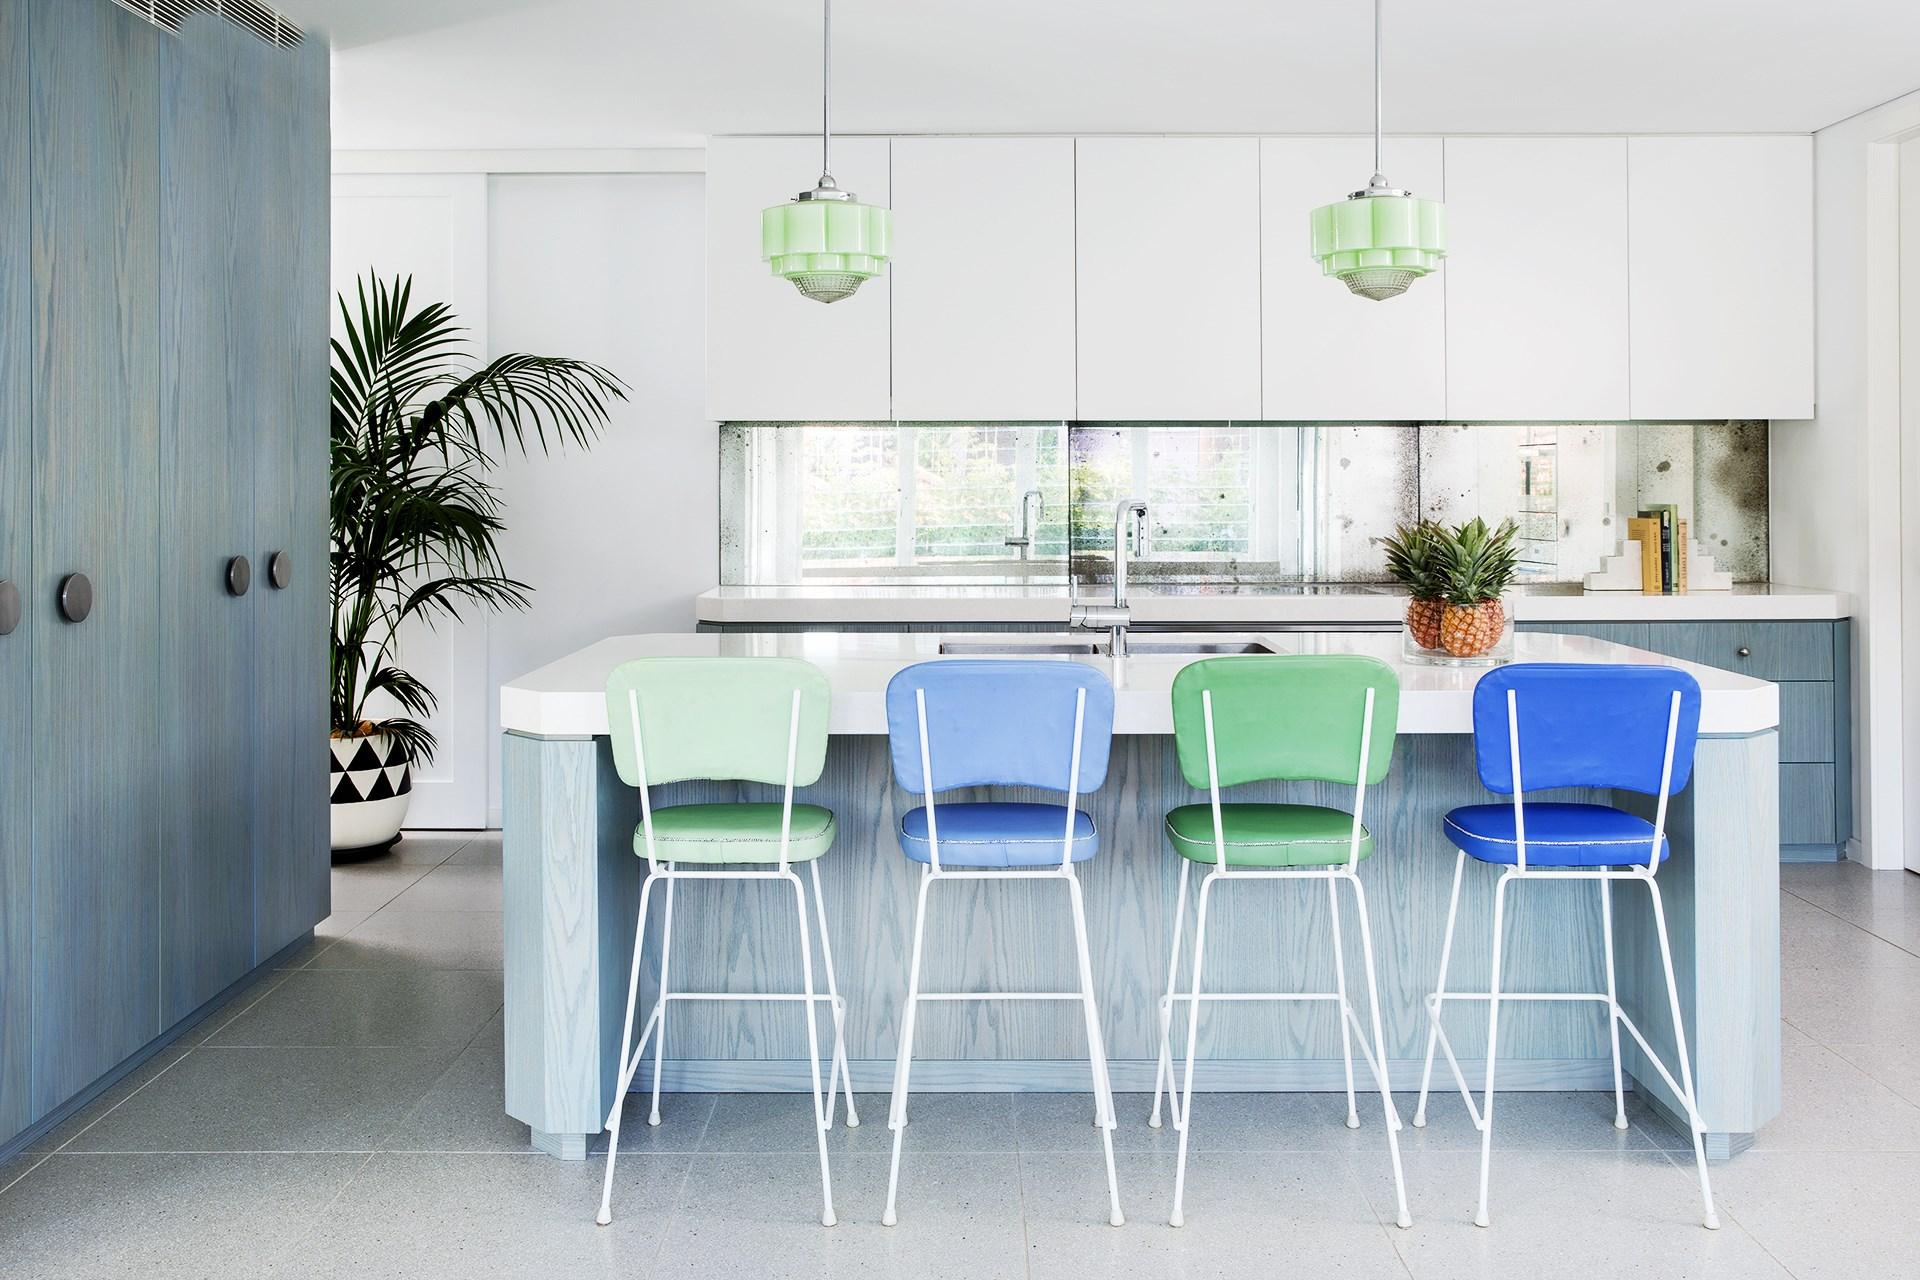 """This large family kitchen has a Miami deco vibe thanks to interior designer [Stacey Kouros](http://staceykourosdesign.com/?utm_campaign=supplier/